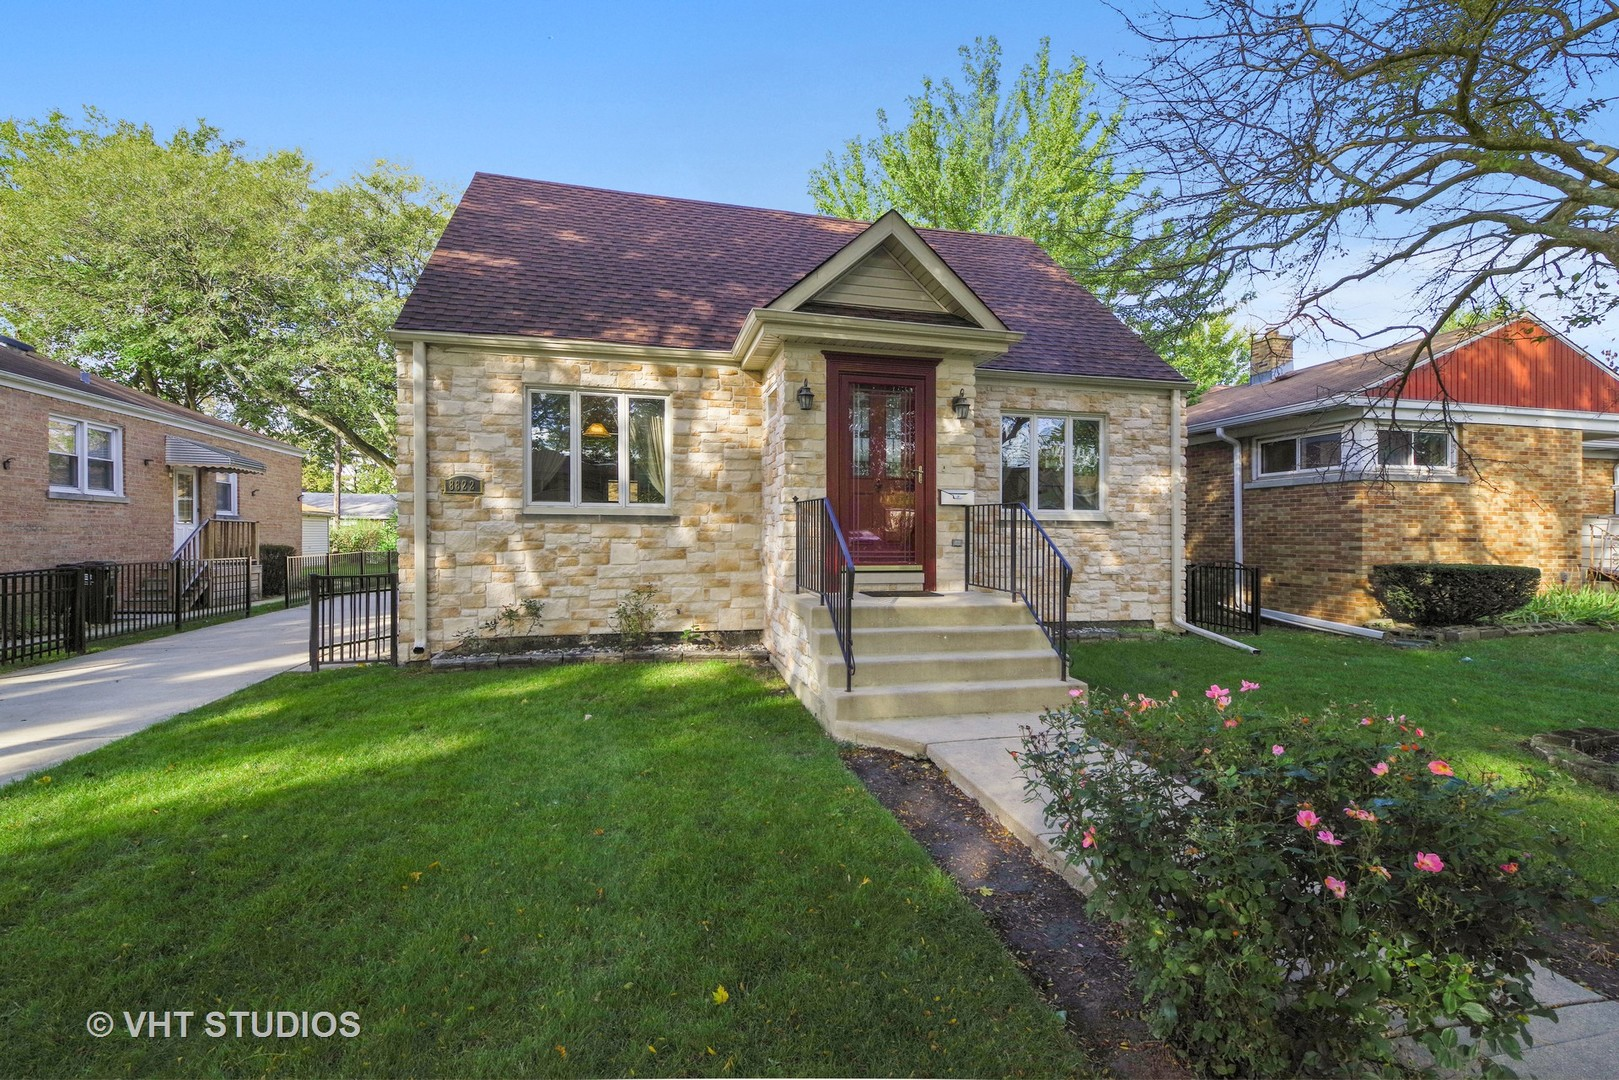 8822 Parkside ,Morton Grove, Illinois 60053